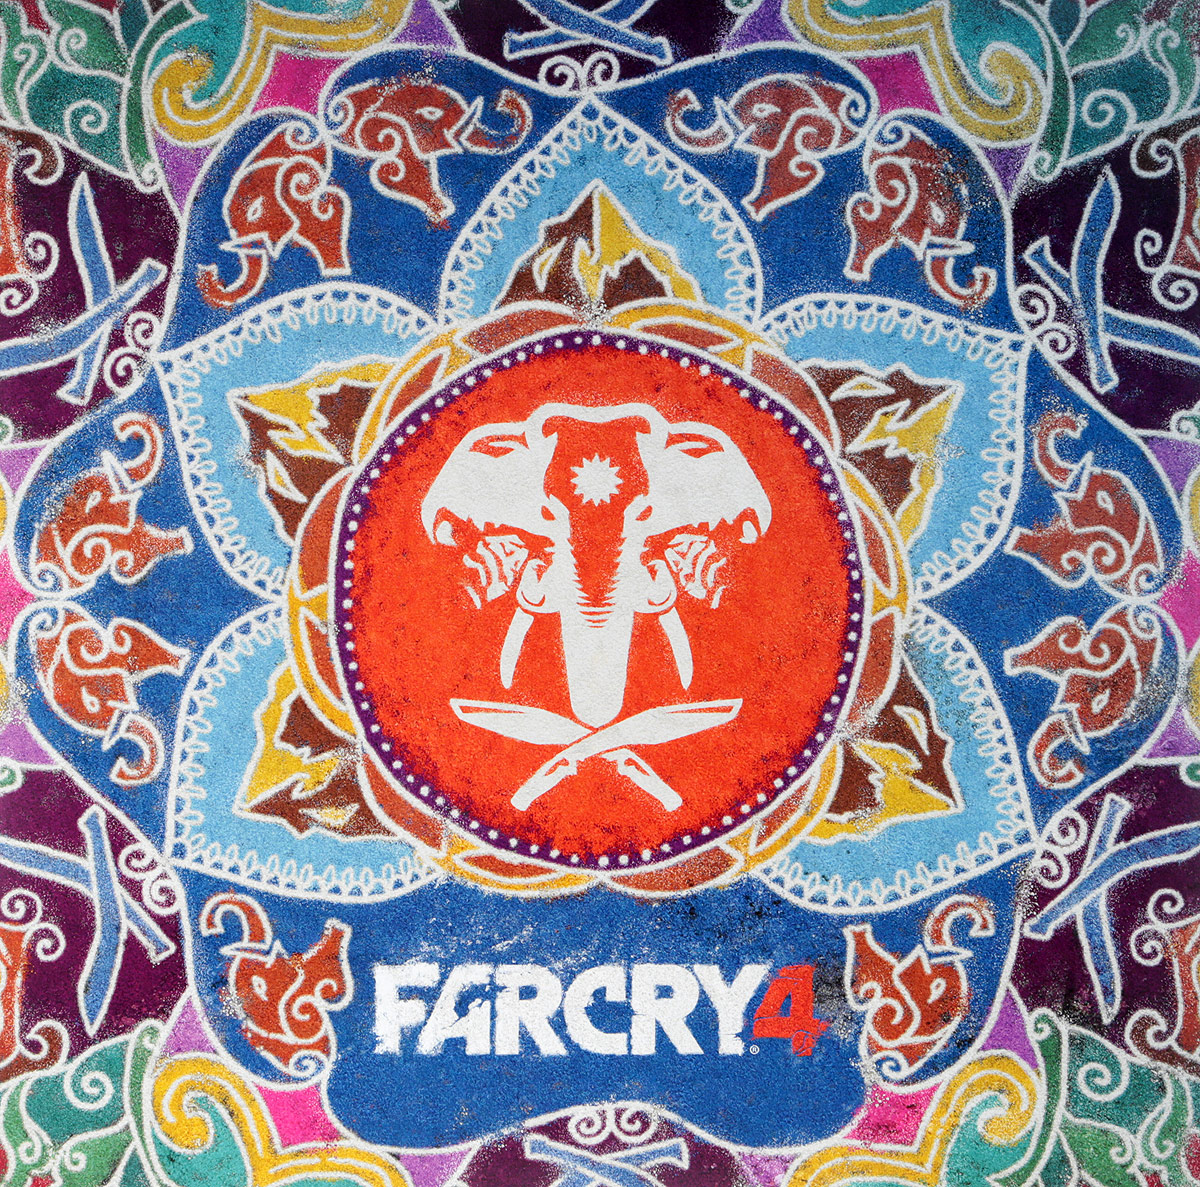 Cliff Martinez. Far Cry 4 (Original Soundtrack) (3 LP) confessions of a shopaholic original soundtrack